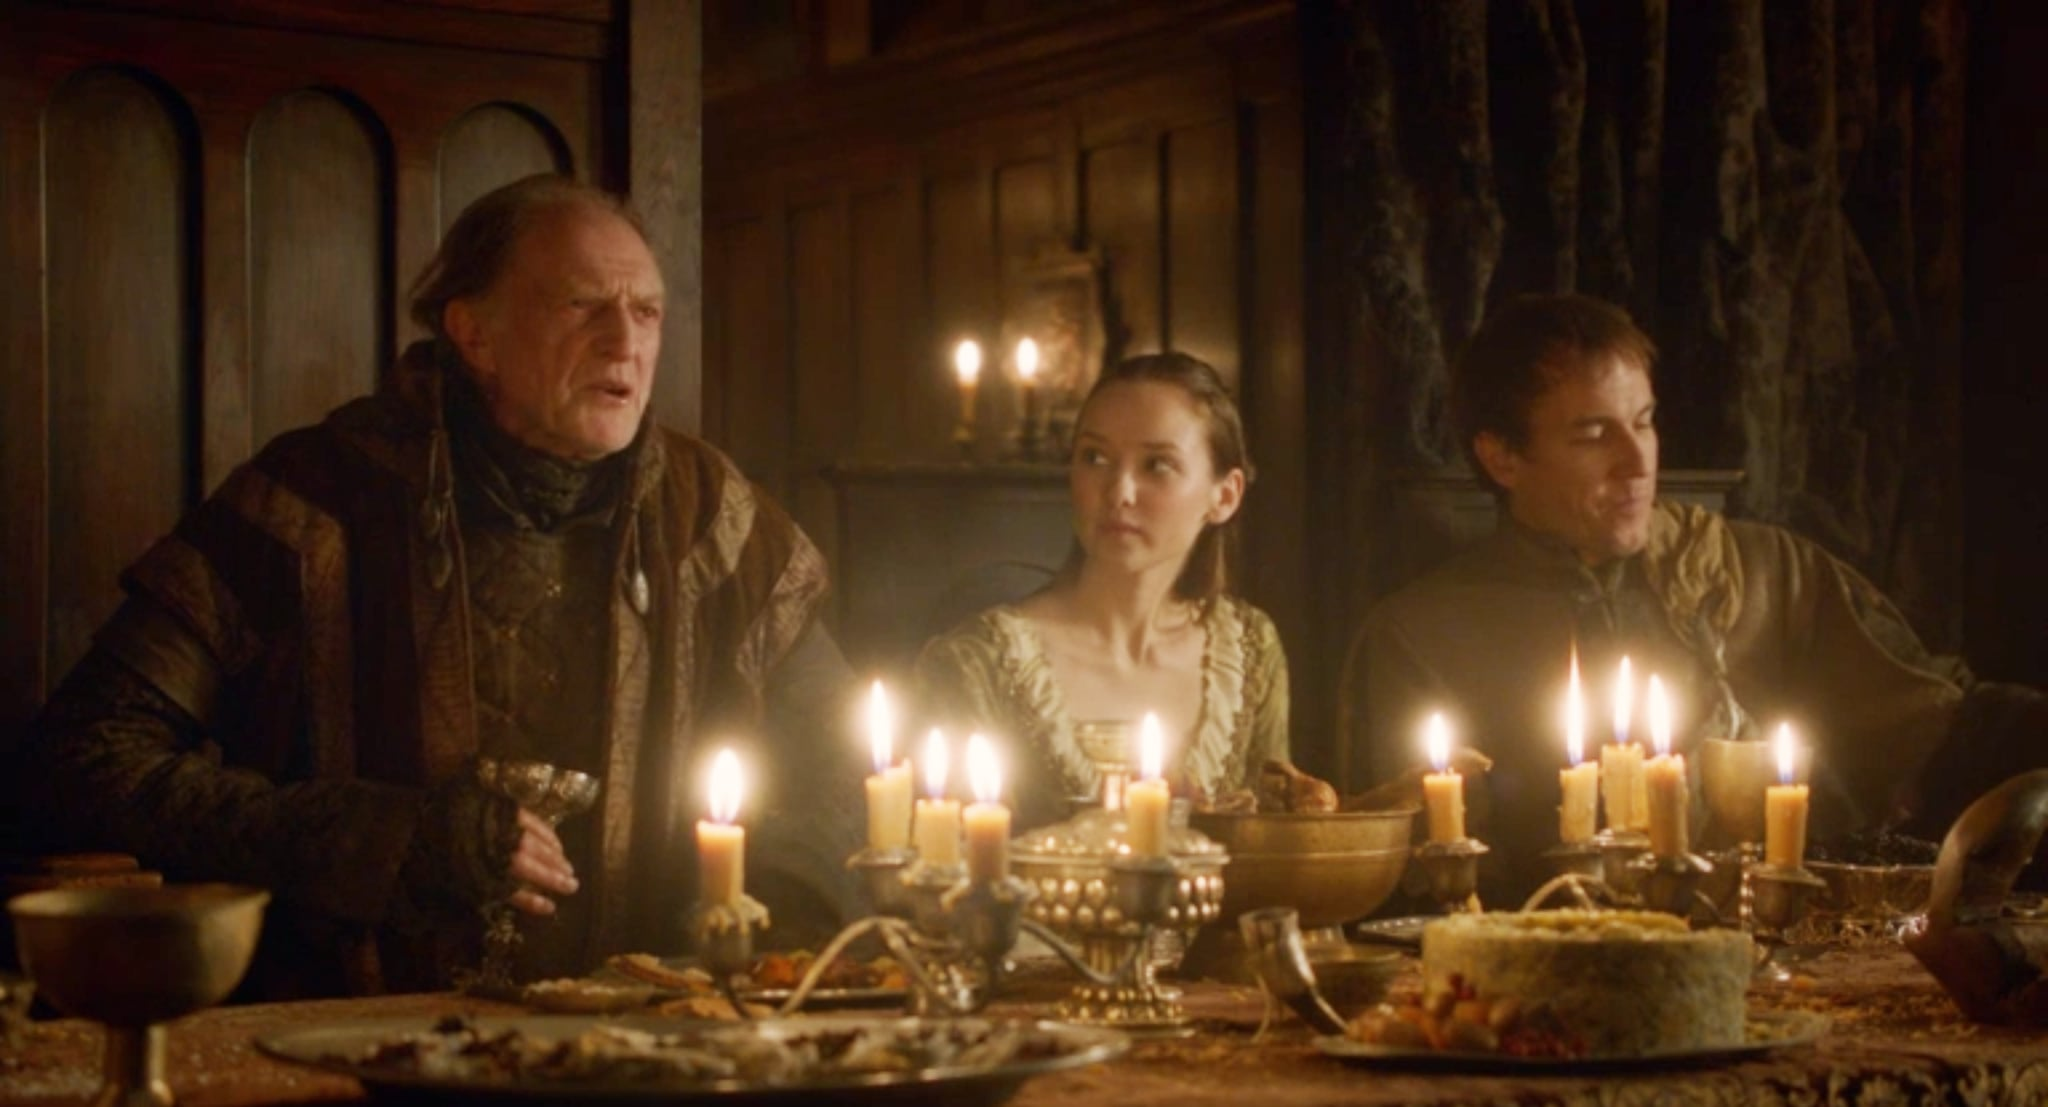 When Is The Red Wedding.Walder Sitting Next To A Terrified Young Bride At The Red